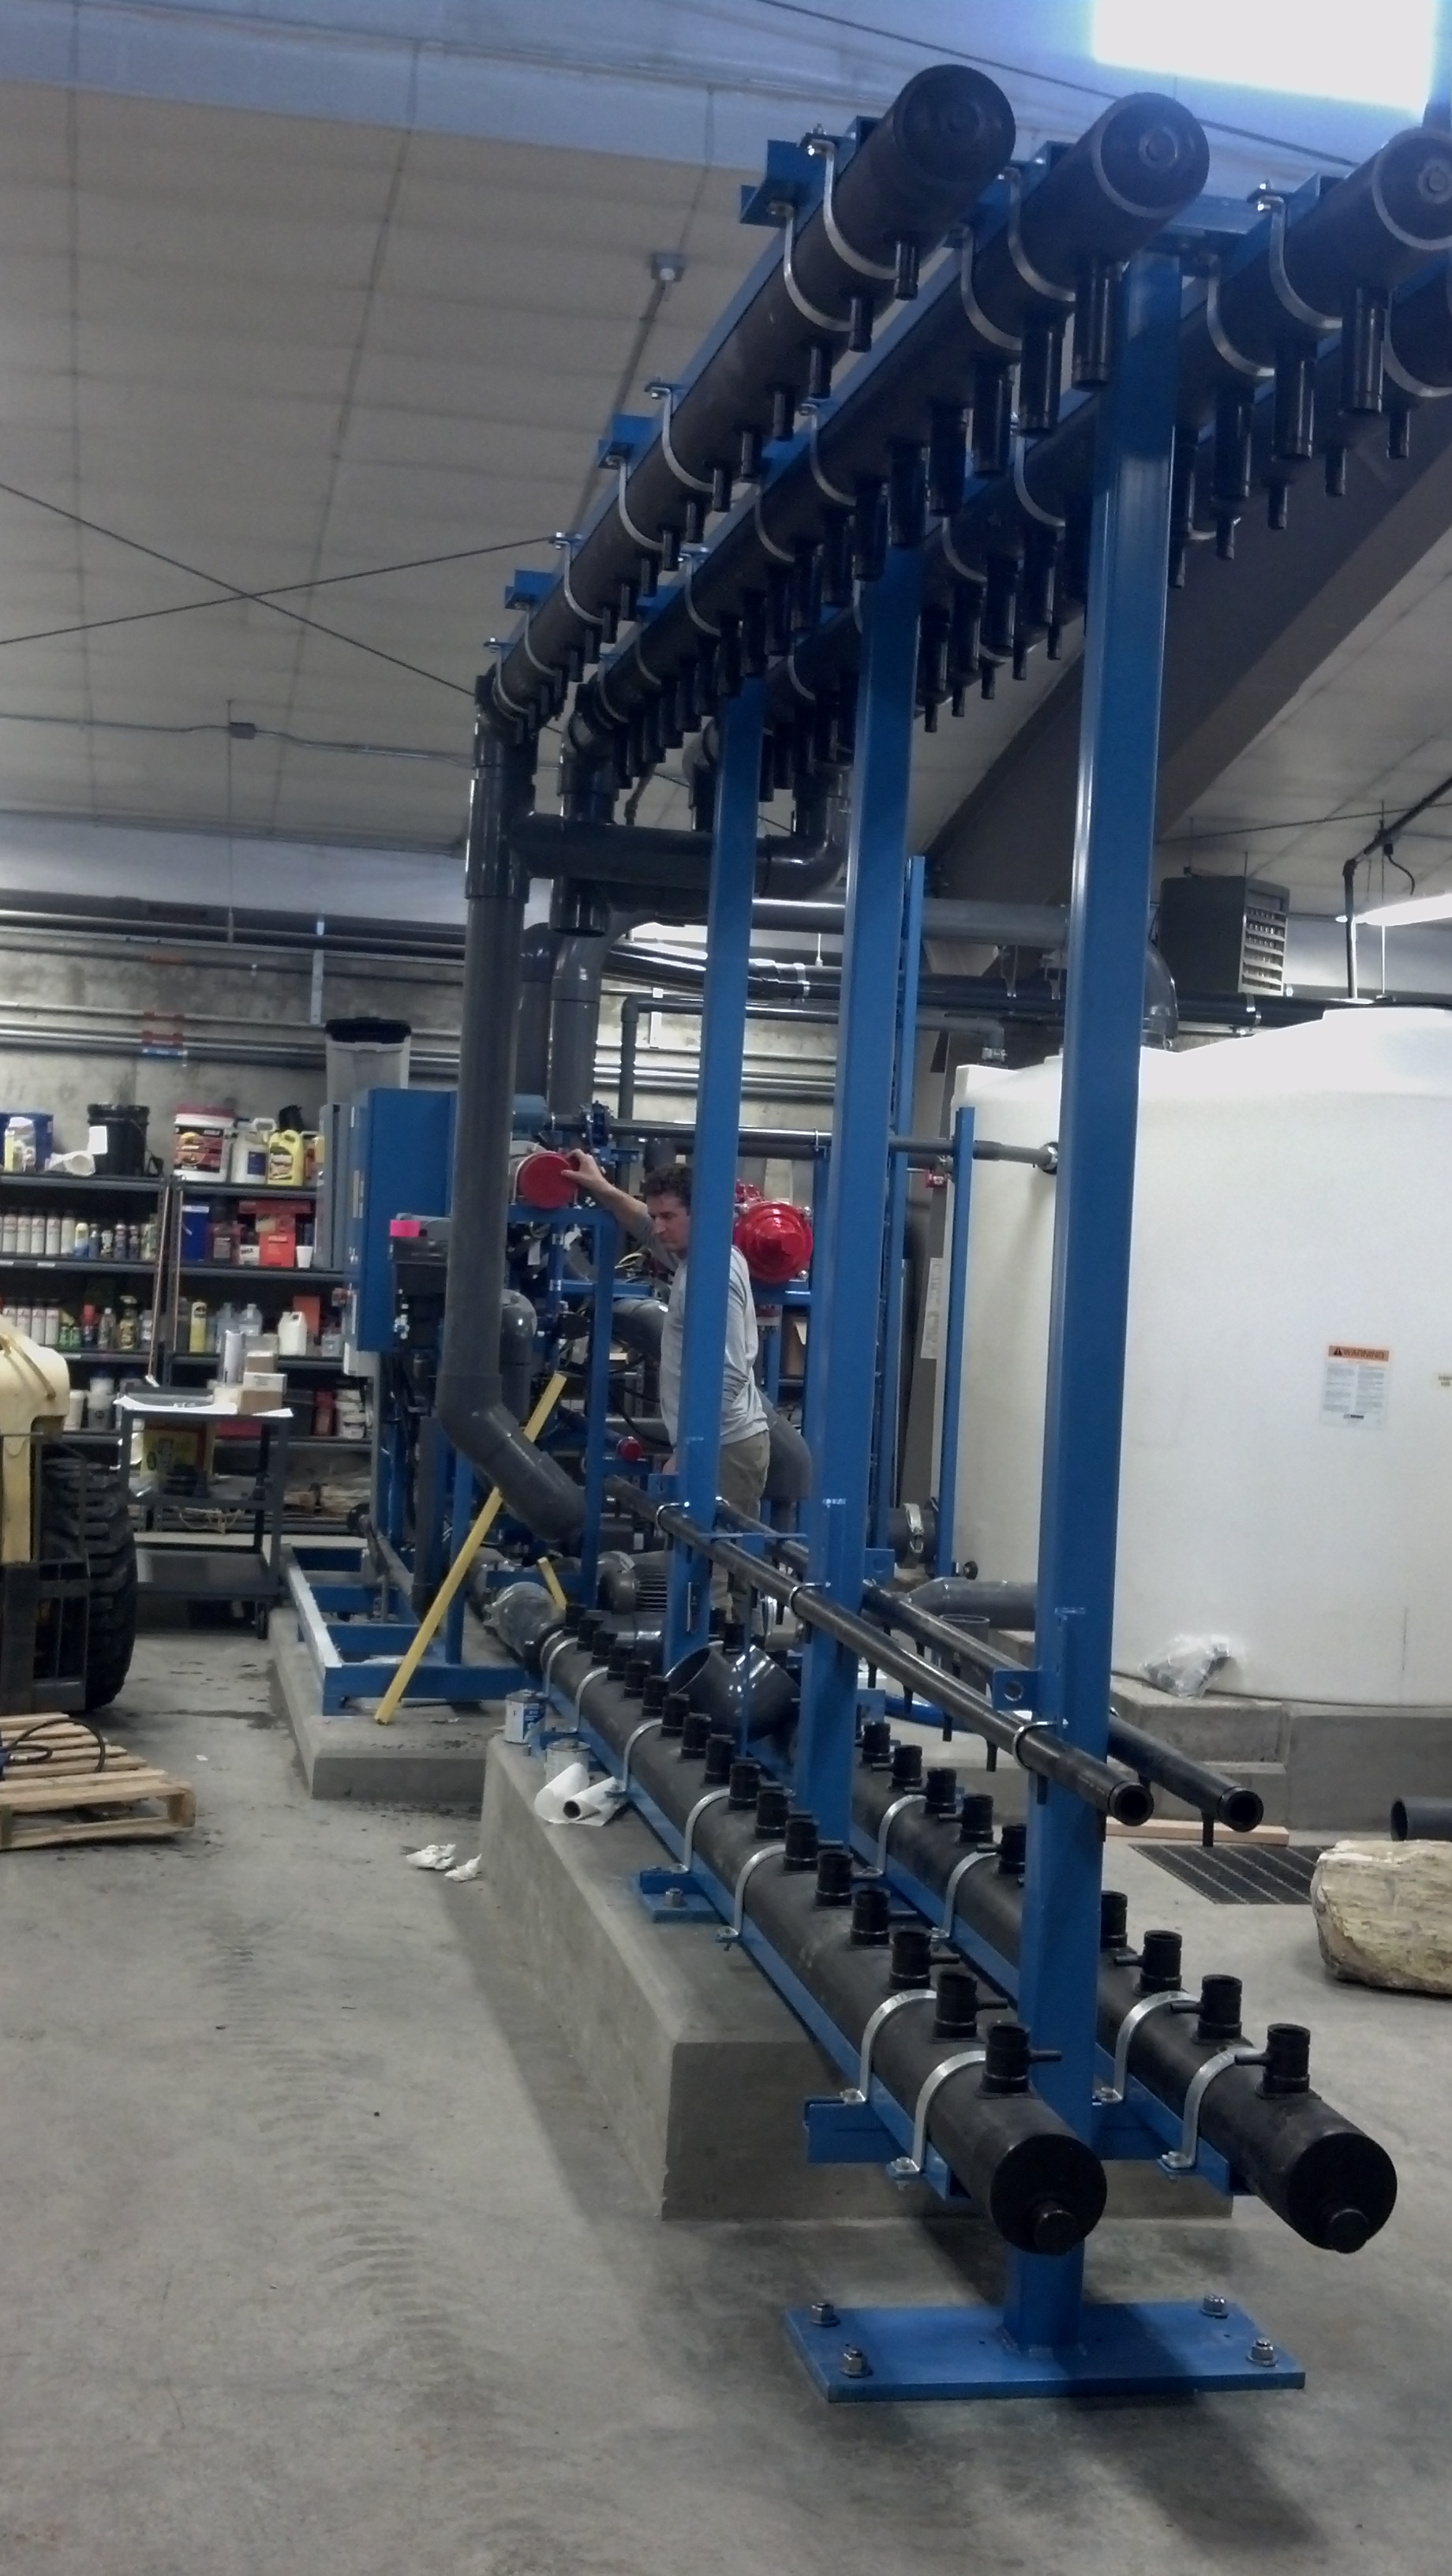 Assembly of the piping, valving, and control system of the new skid.